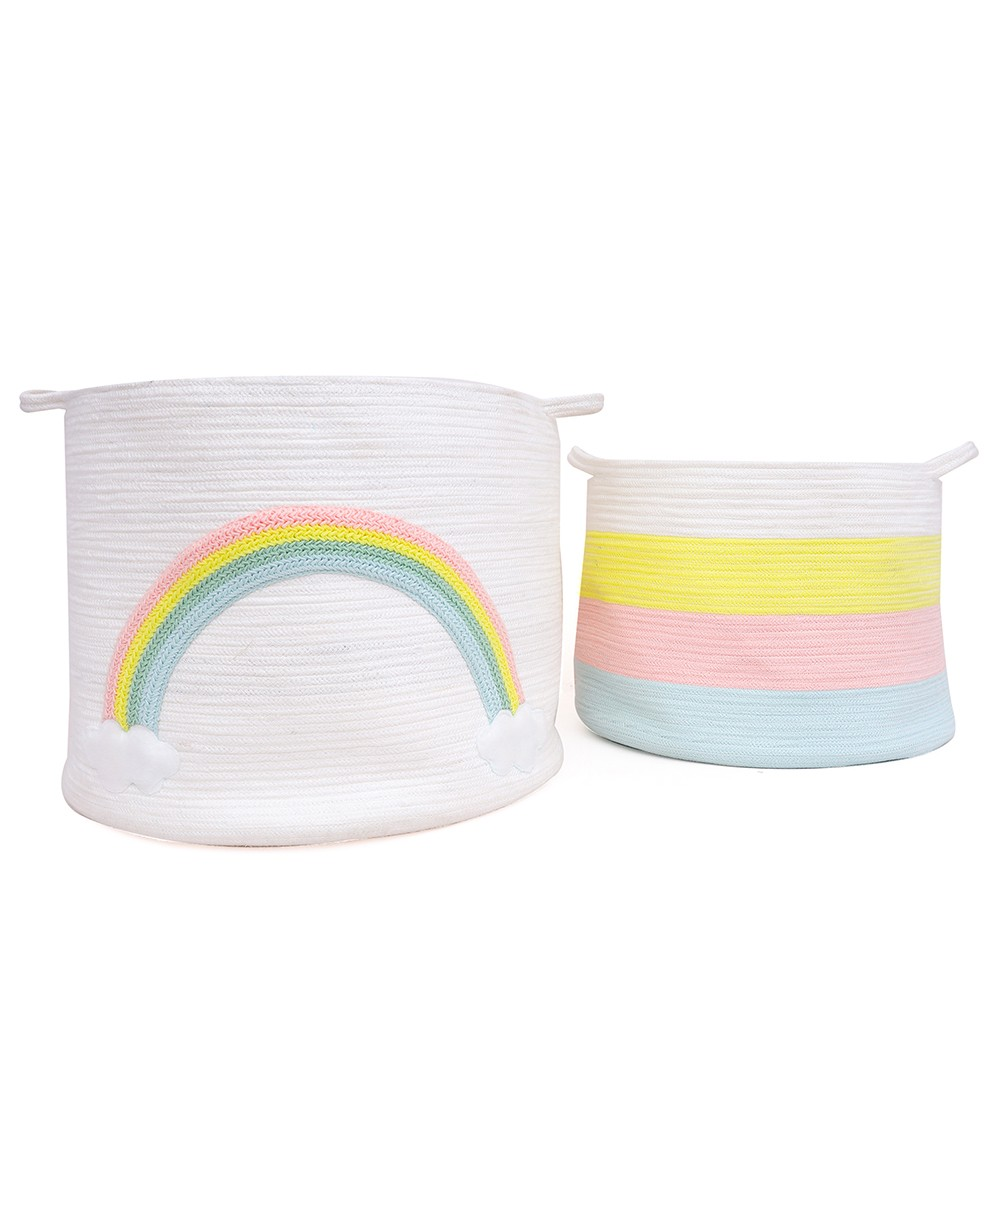 Arcus Cotton Rope Storage Basket - Combo Pack of 2